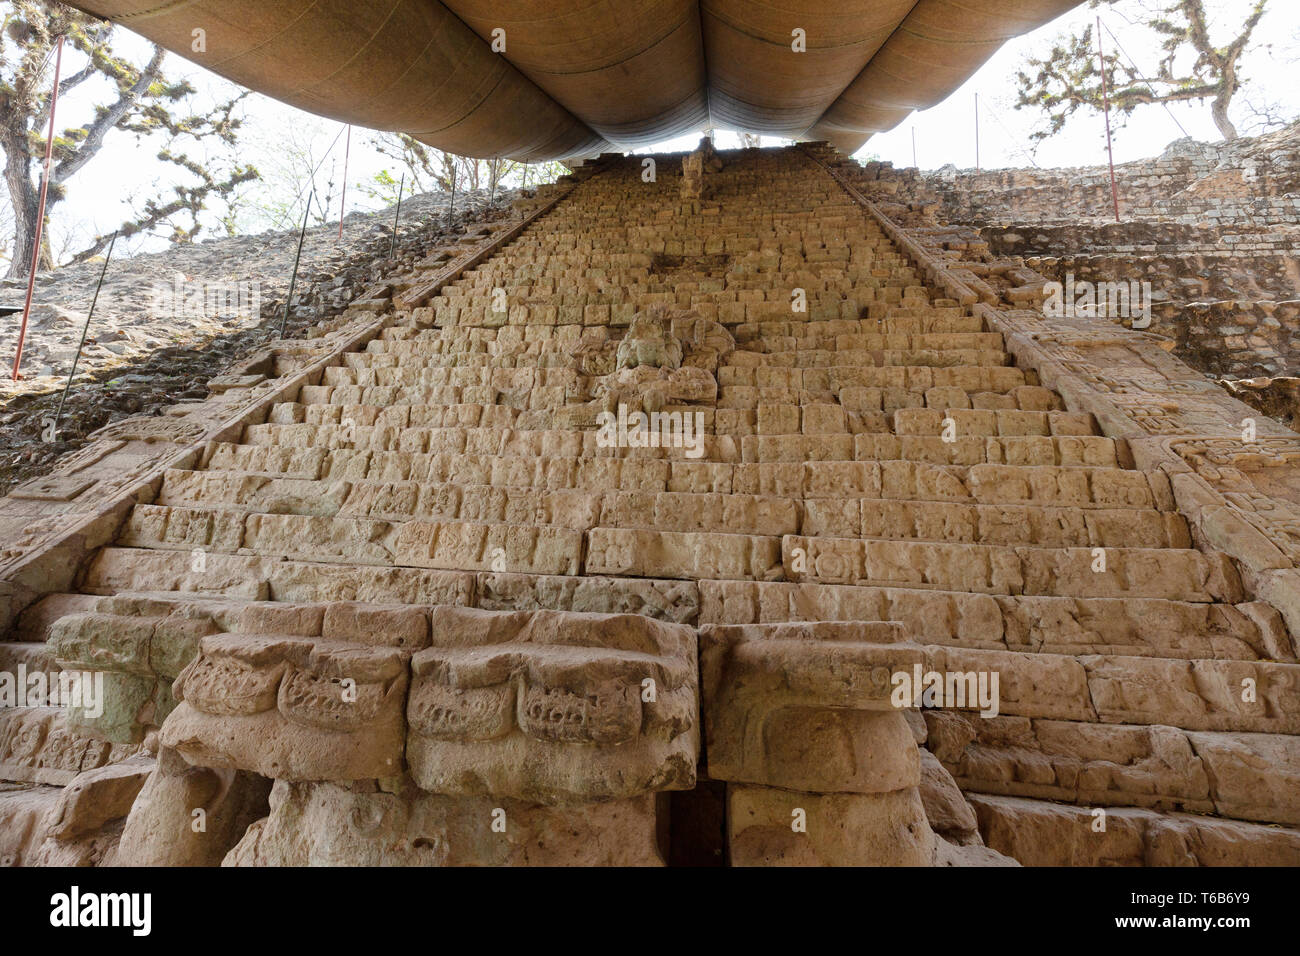 Maya ruins - the mayan Hieroglyphic Stairway at the UNESCO World heritage site of Copan, Honduras Central America - Stock Image